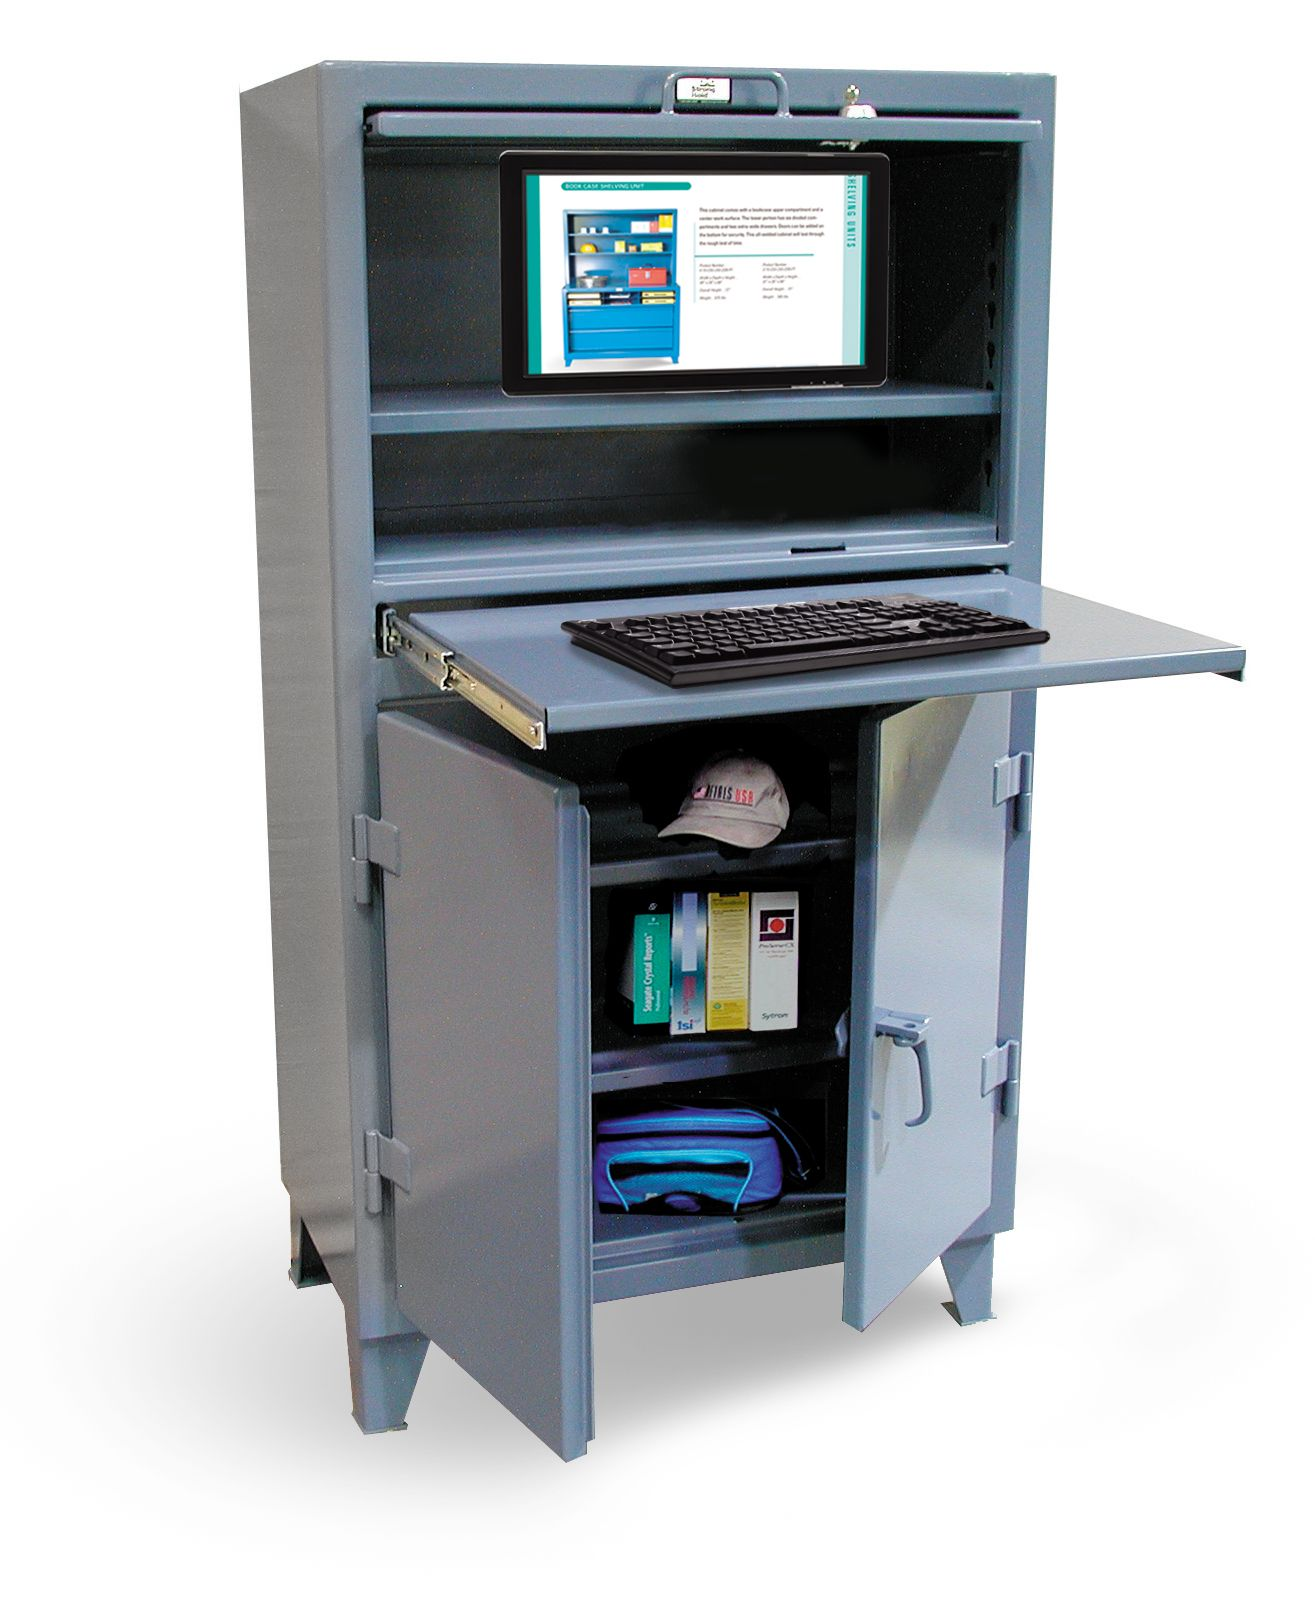 Deluxe Computer Cabinet   Computer Cabinet With Lift Up Lid, Slide Out  Keyboard Shelf And Lower Compartment. Top Compartment Is Lockable With A  Key And ...